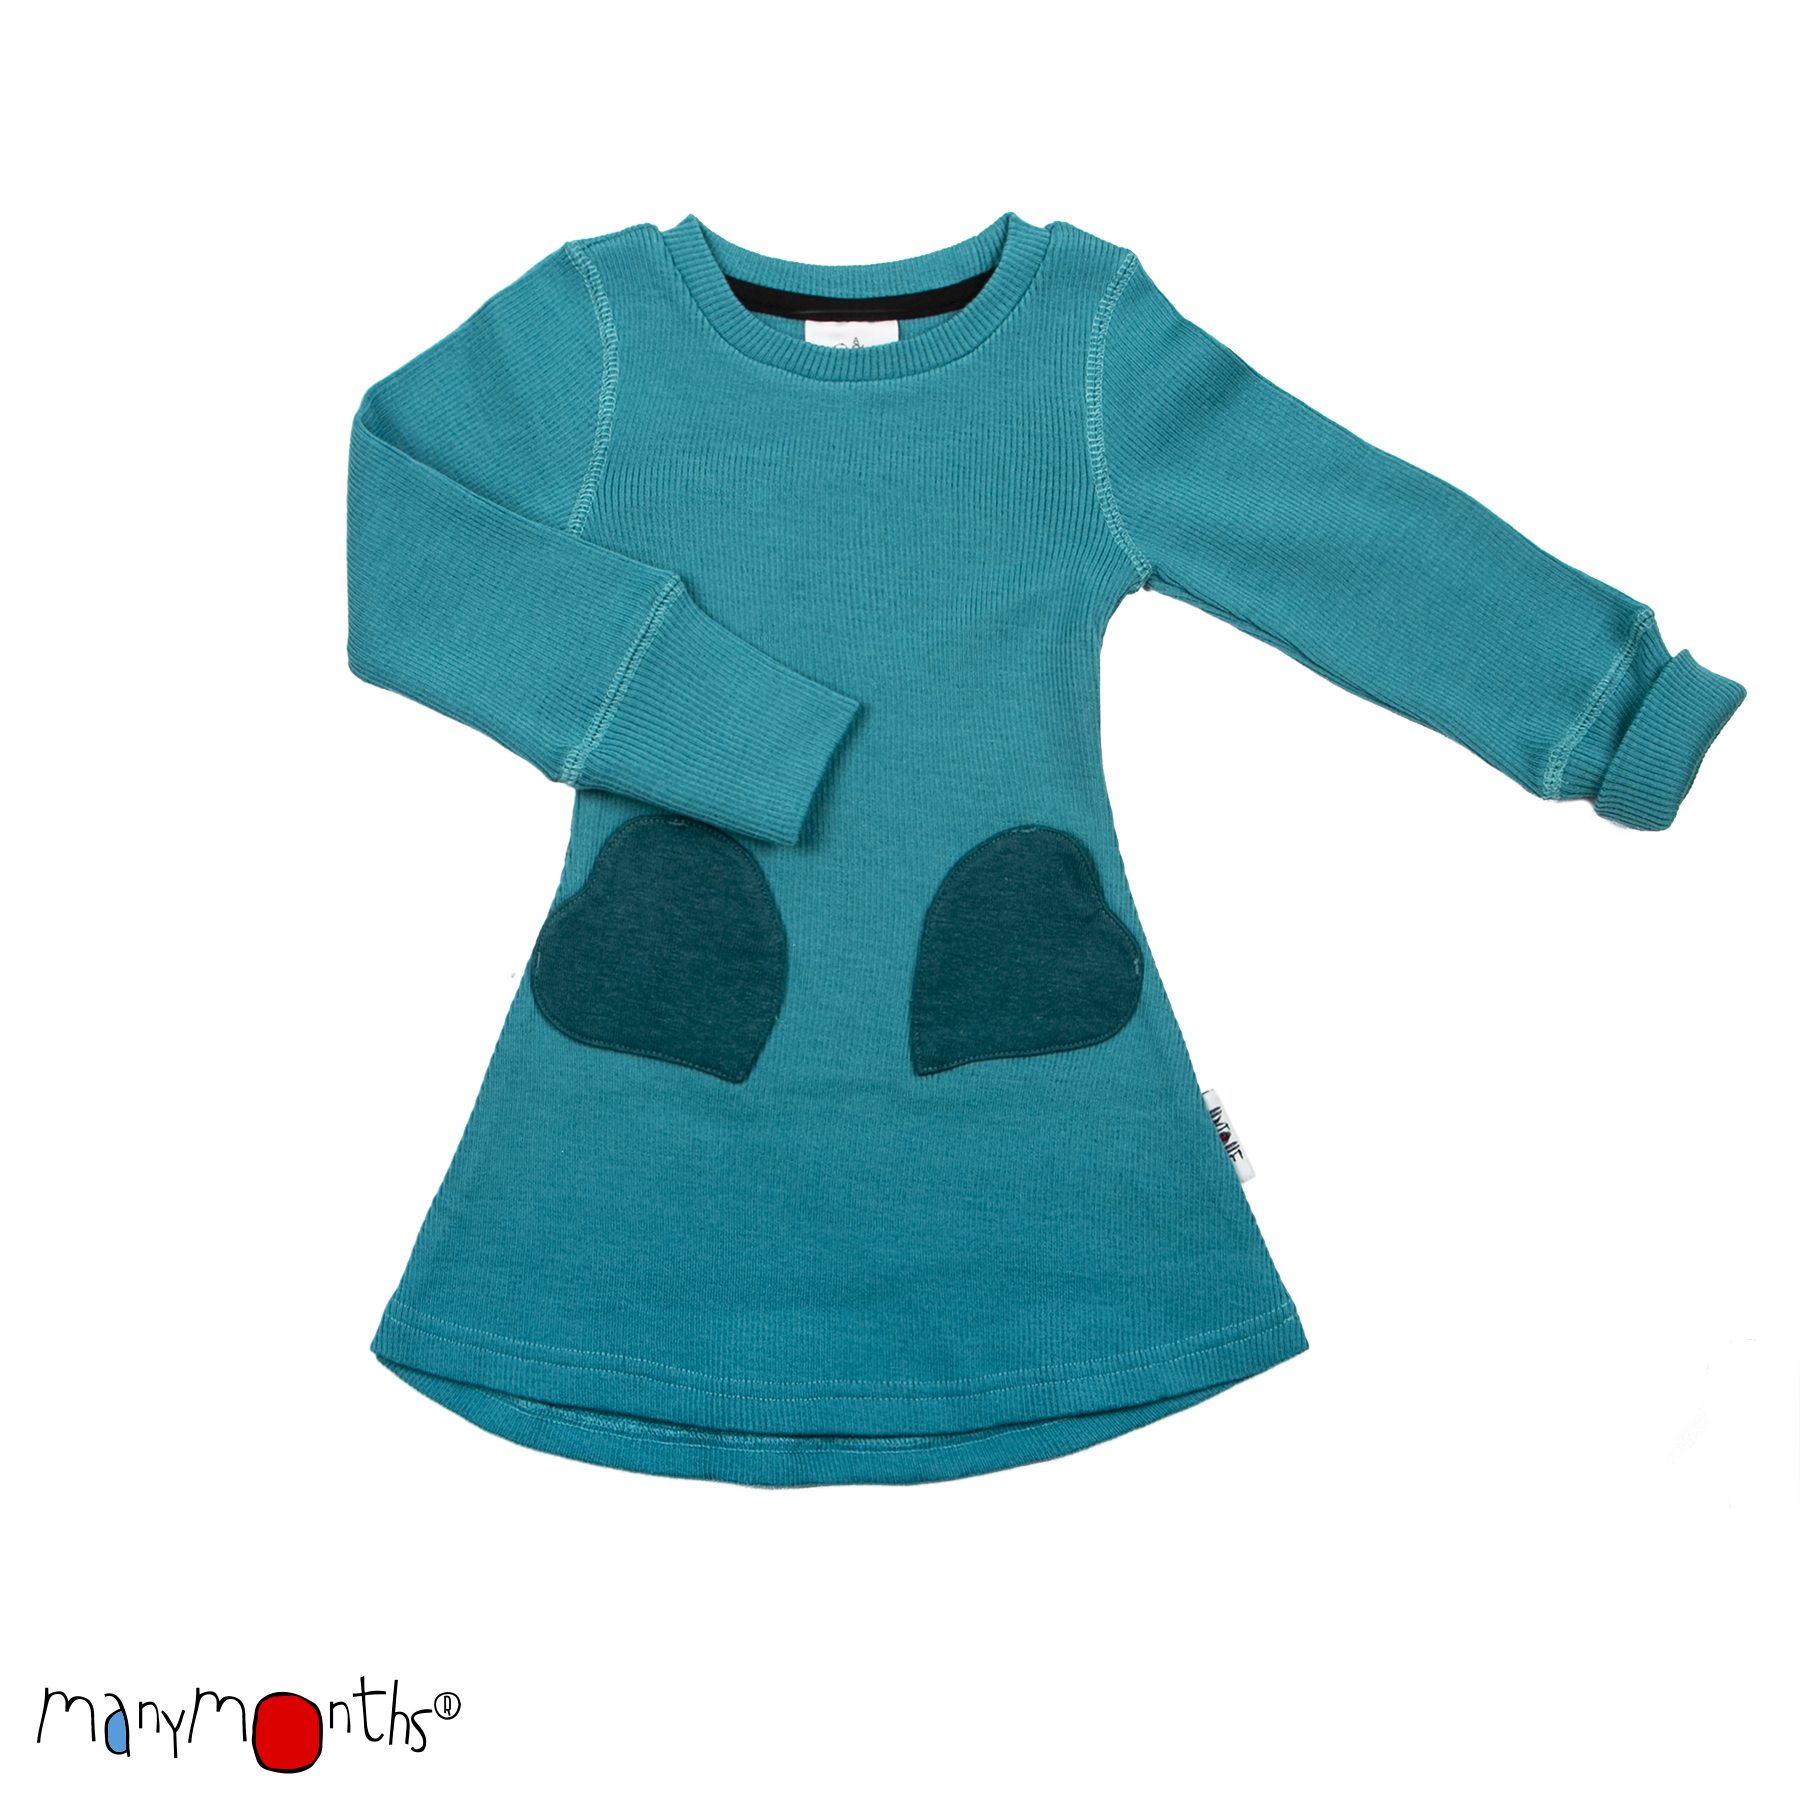 ManyMonths Natural Woollies Heart Pockets Dress